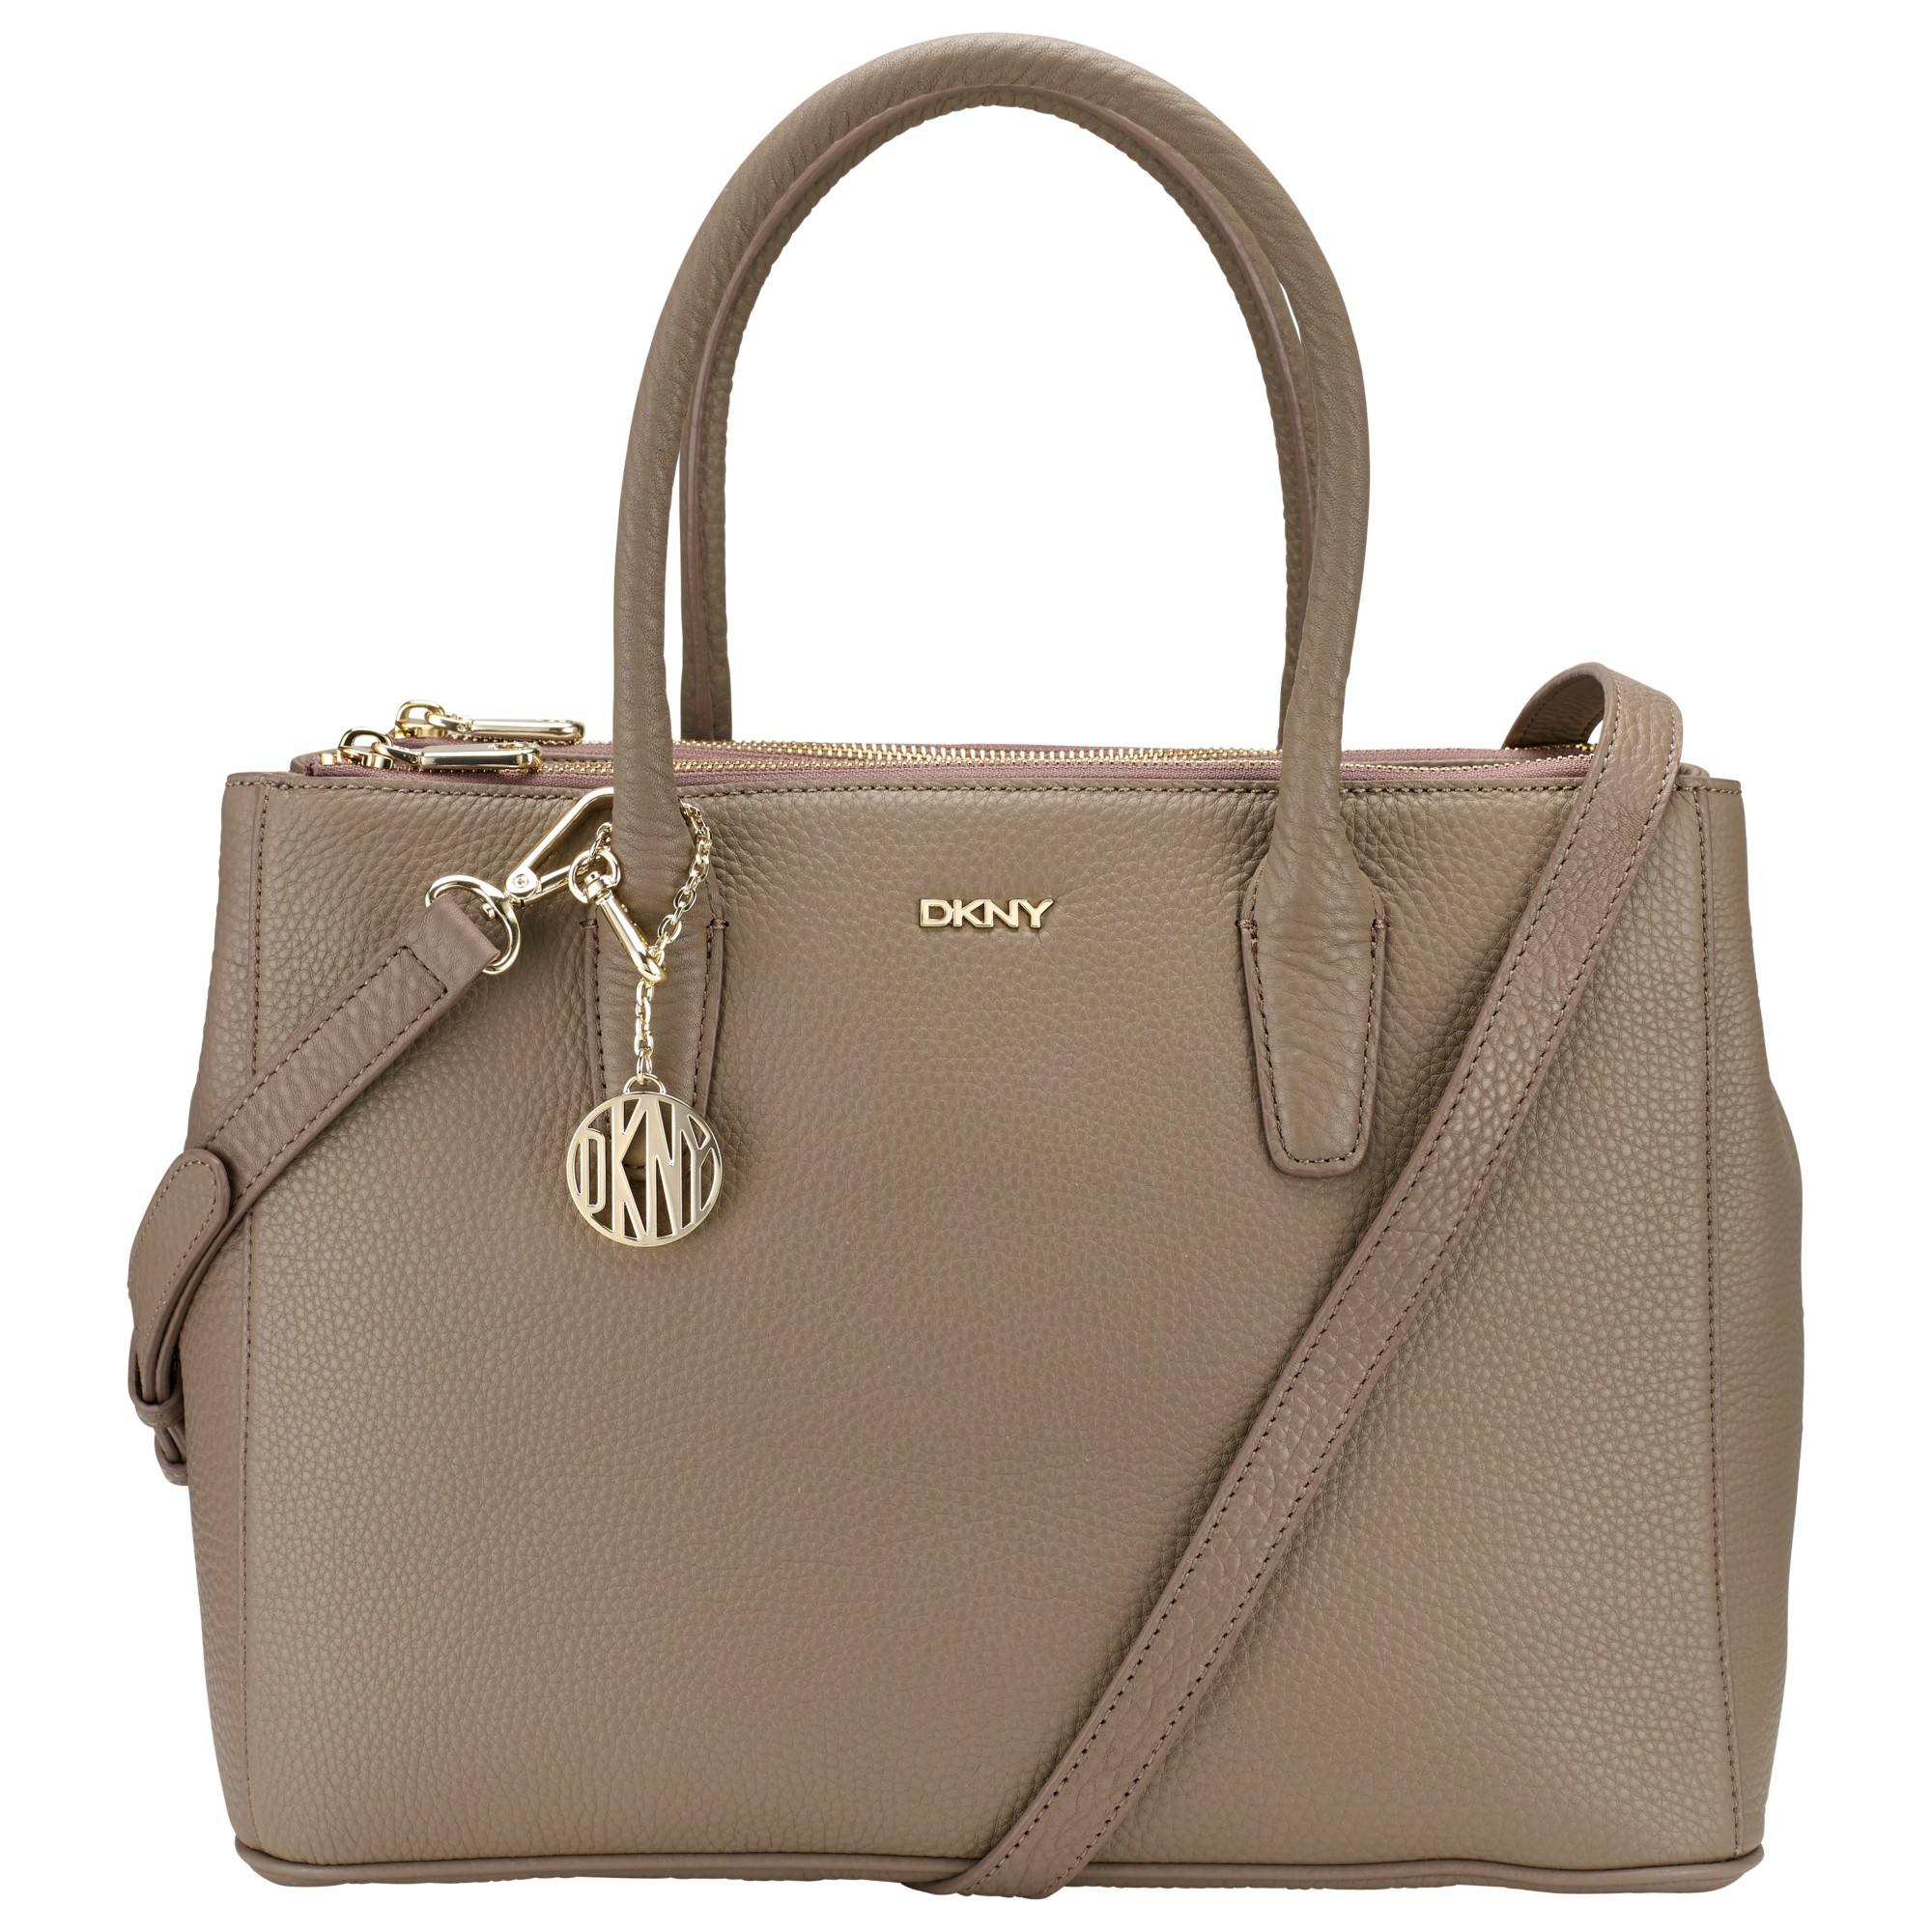 422809191c3c8 DKNY Tribeca Leather Large Zipped Shopper Bag in Natural - Lyst